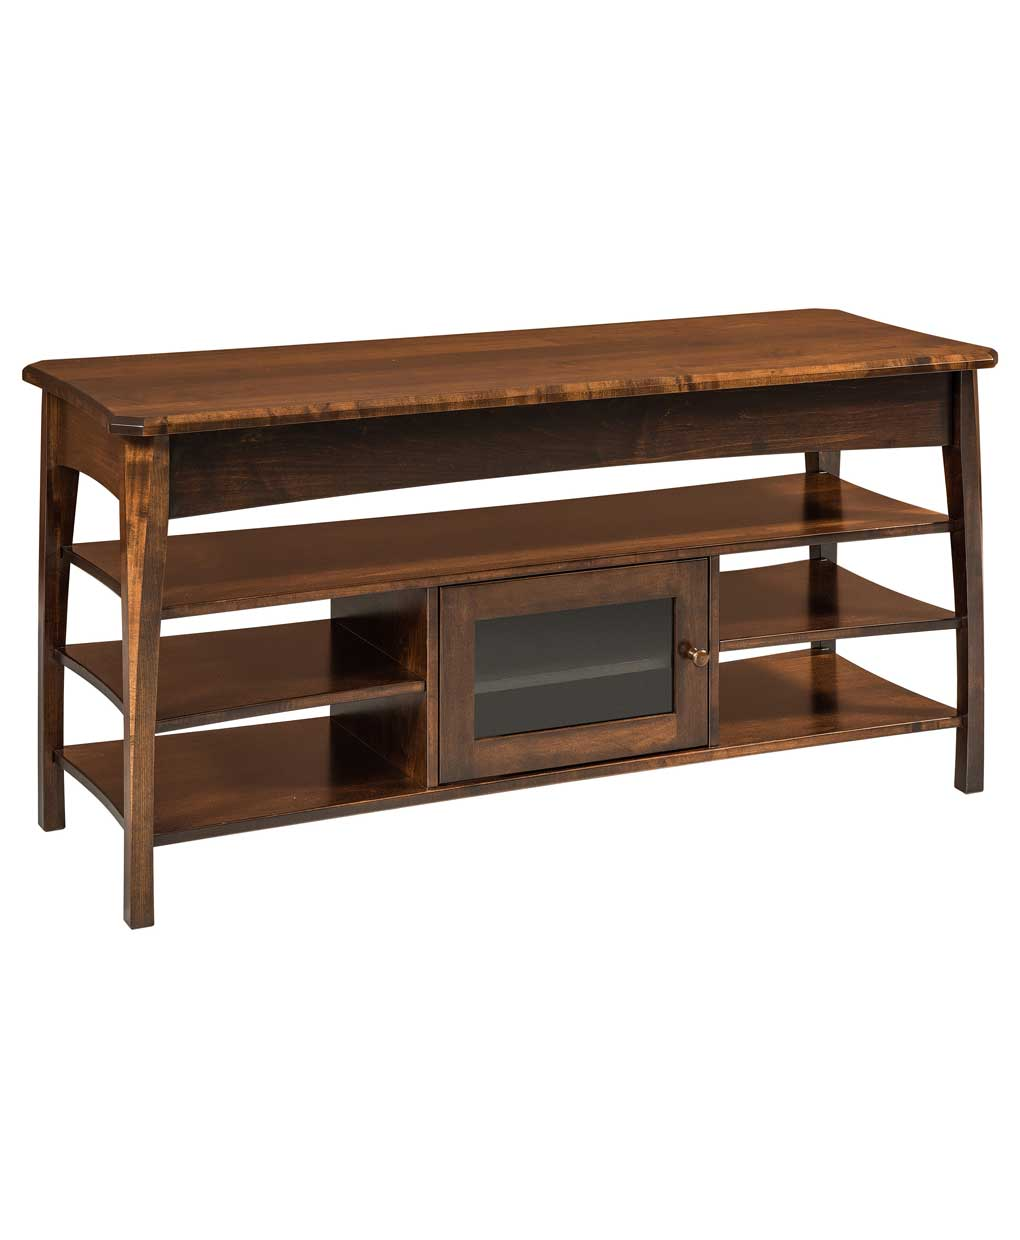 perry open tv stand  amish direct furniture - amish built perry open tv stand  wide  prtv